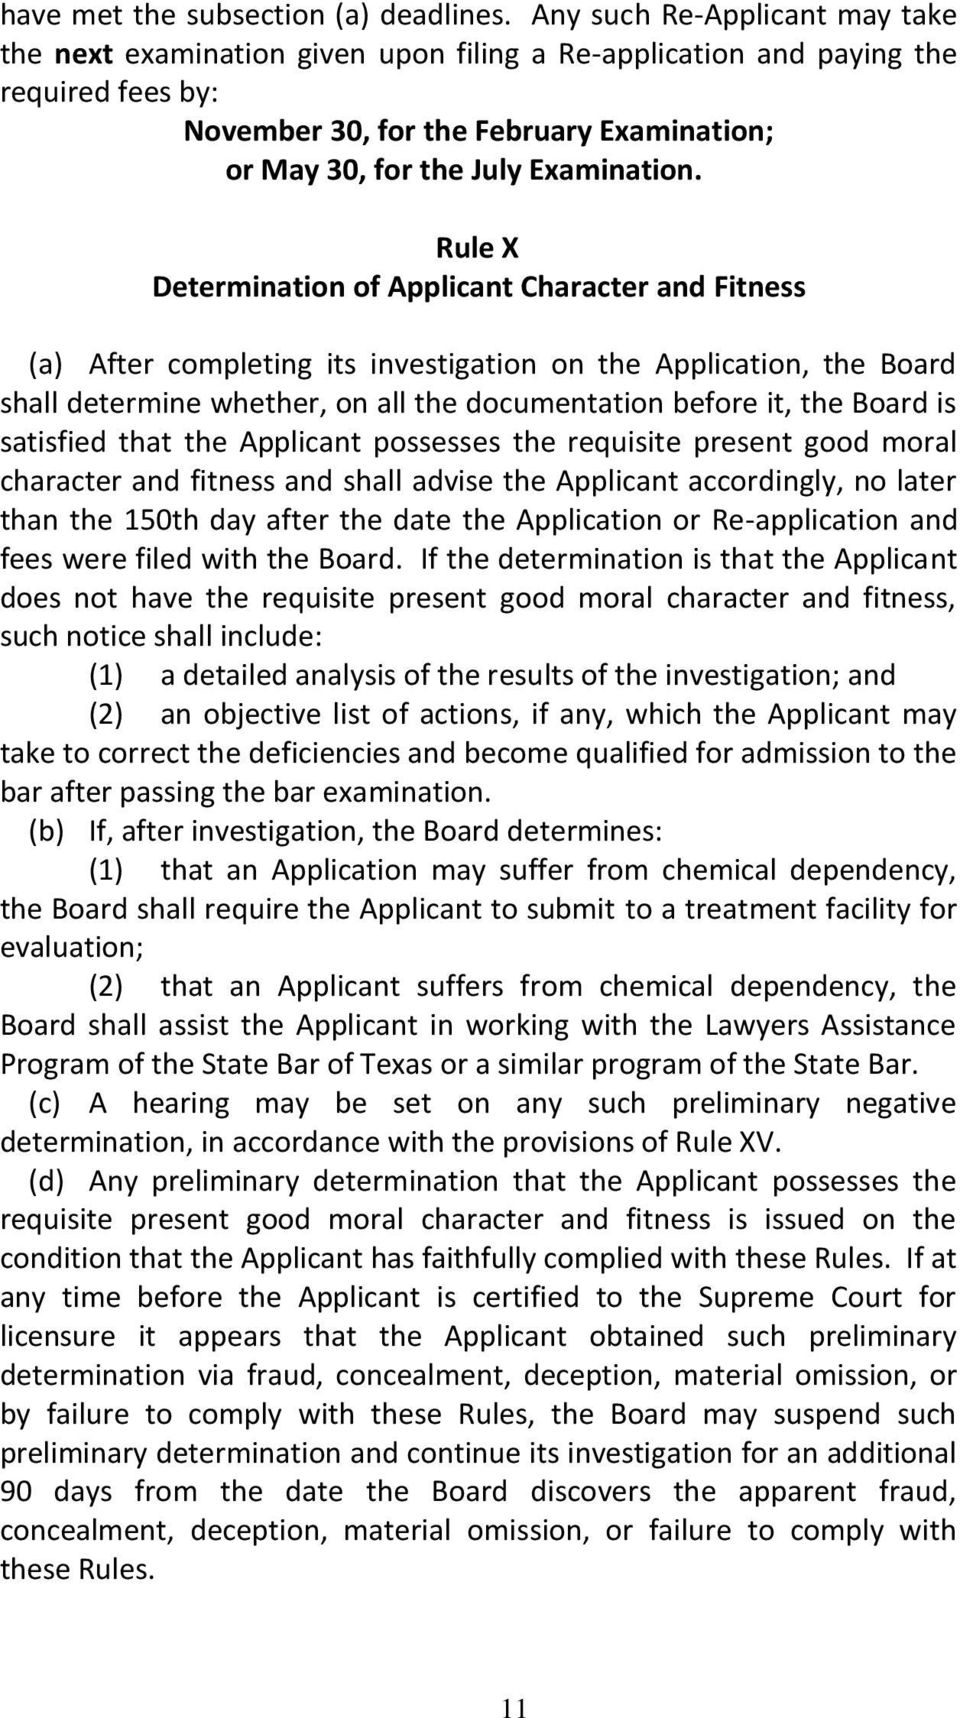 Rule X Determination of Applicant Character and Fitness (a) After completing its investigation on the Application, the Board shall determine whether, on all the documentation before it, the Board is